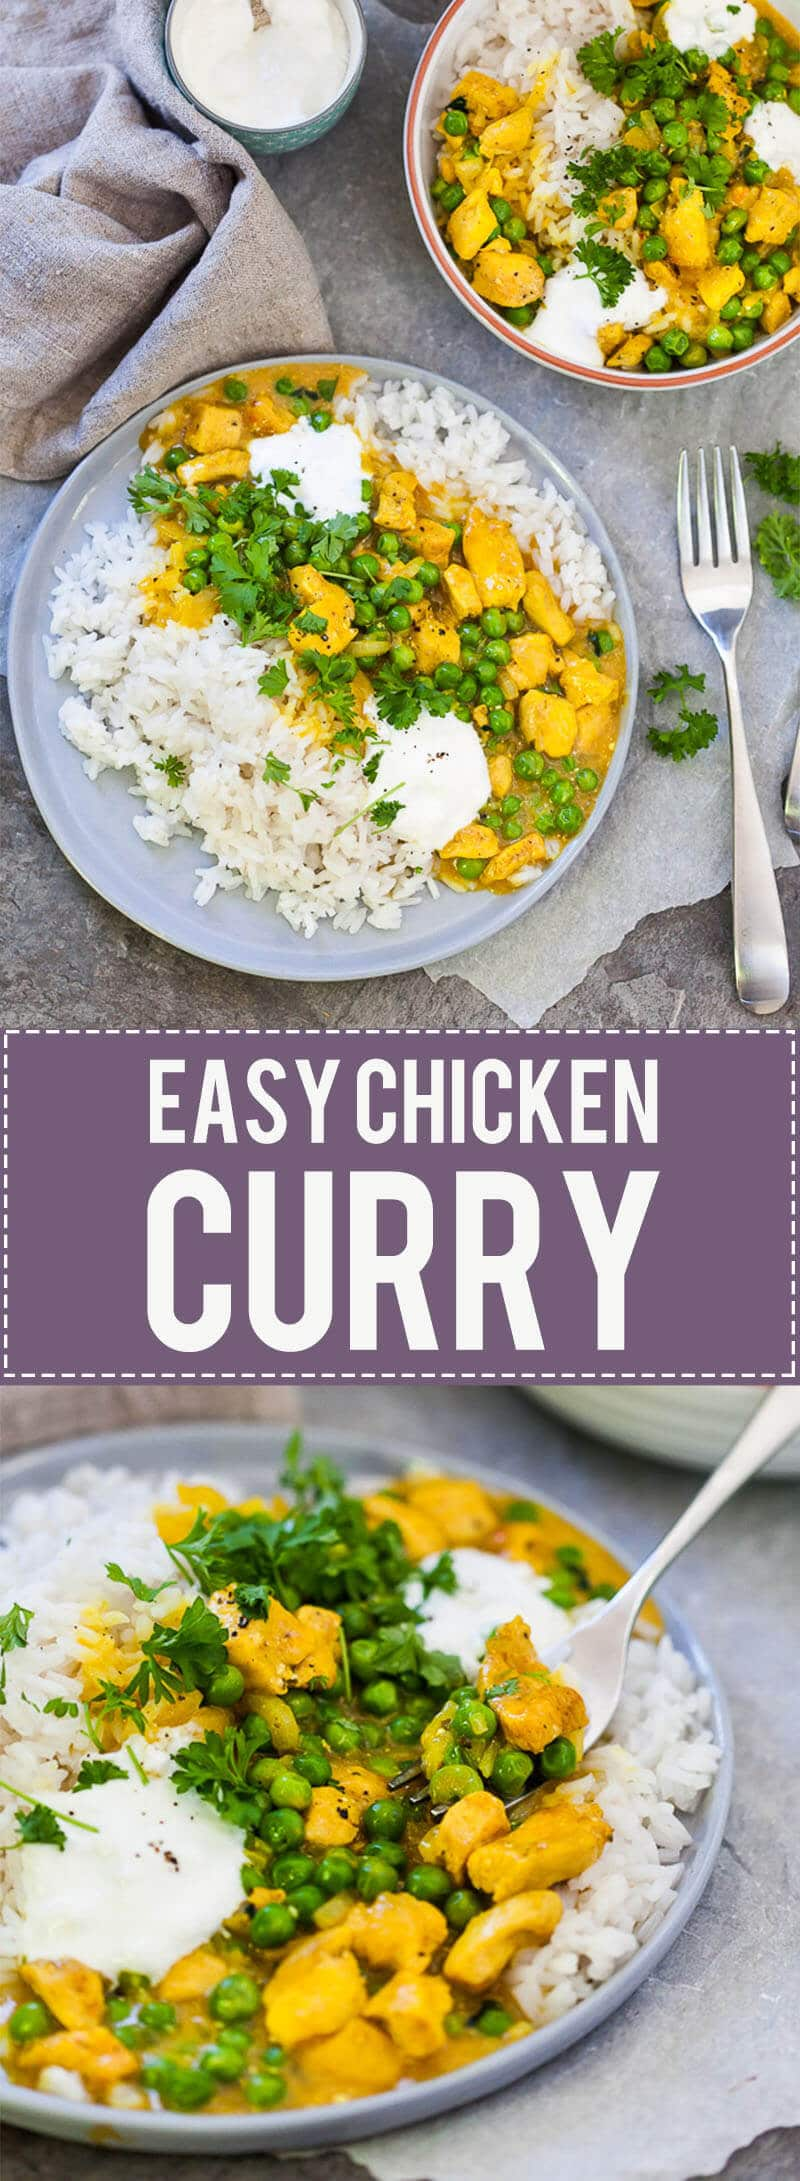 An Easy Chicken Curry is all you need on a gloomy winter day. Pair with plain fluffy rice and some sour cream for a perfect easy meal. | www.vibrantplate.com